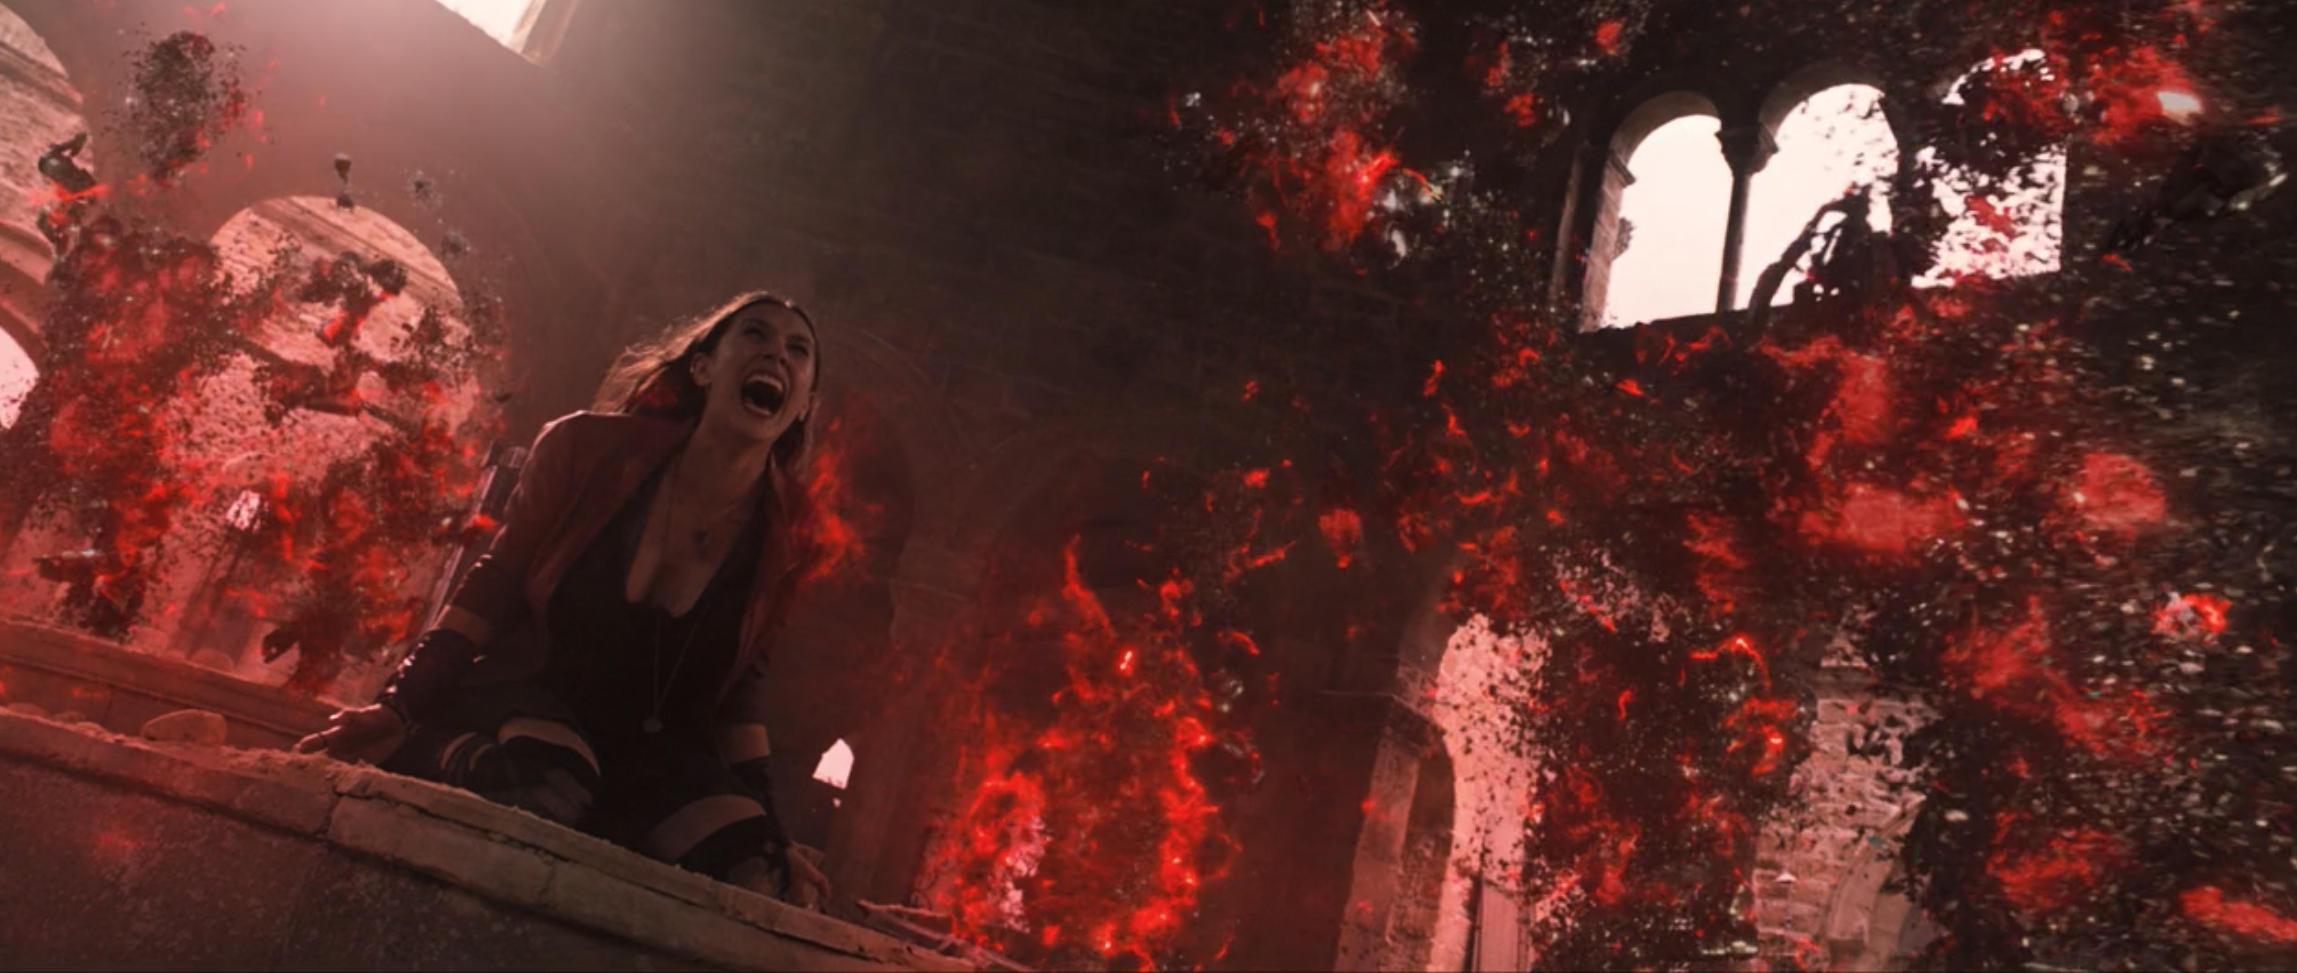 Wanda Maximoff falls to her knees as an explosion of red energy destroys the robot army around her.